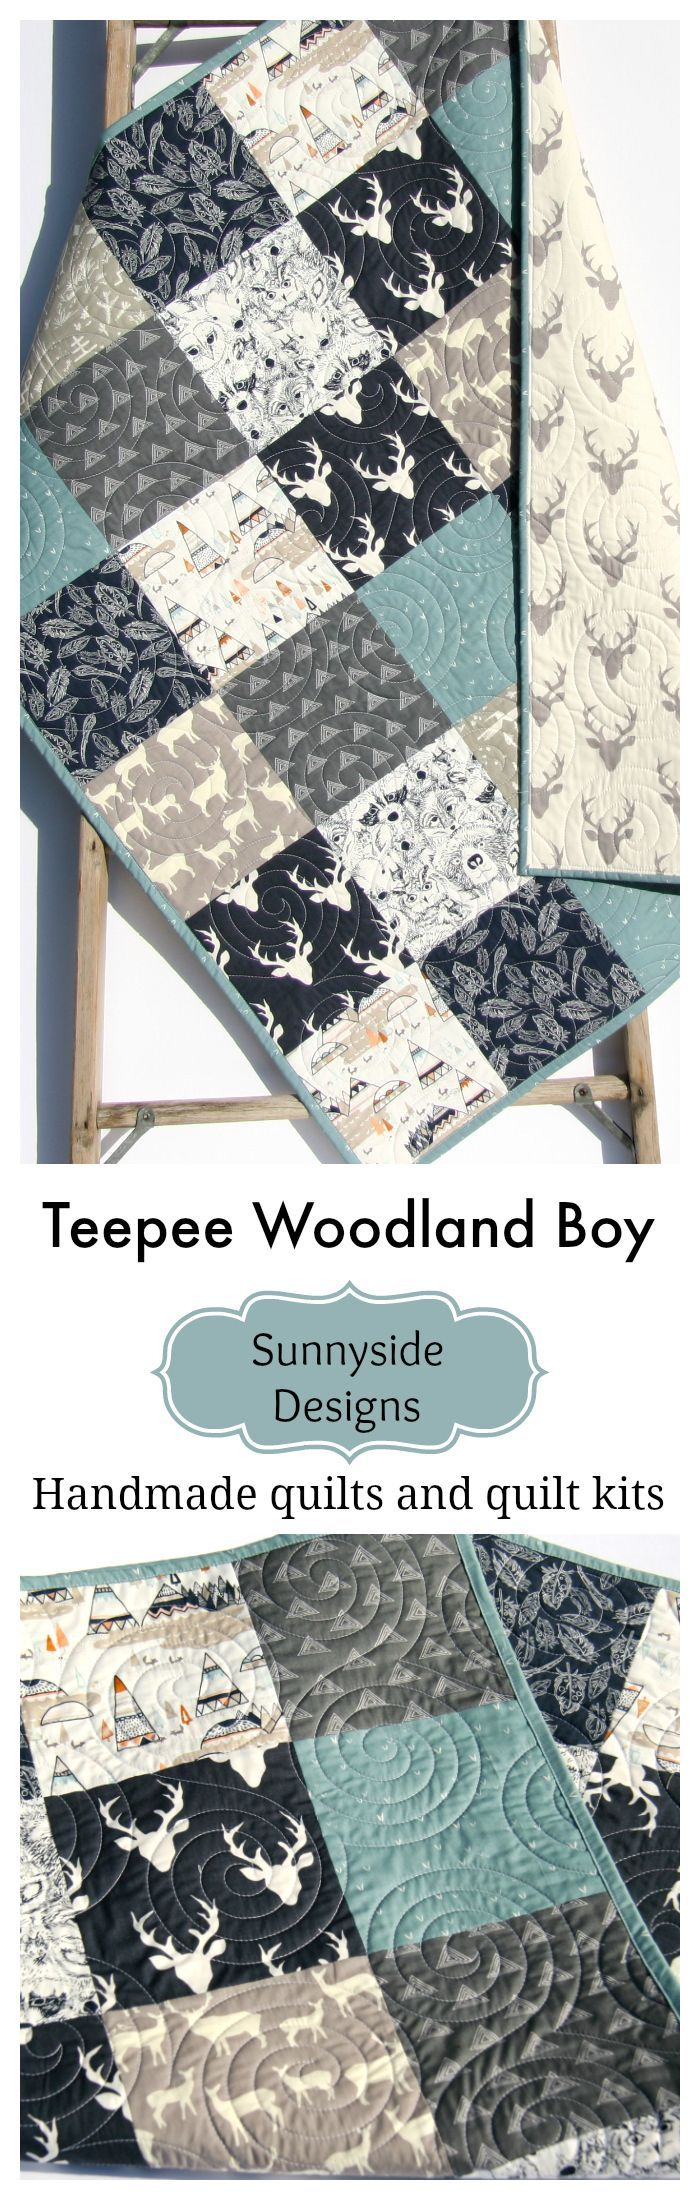 Woodland Teepee Baby Bedding, Handmade Baby Quilt, Toddler Bedding, Deer Forest Animals Modern Baby Boy Nursery Ideas, Teepee Feathers Buck, Baby Quilt Kit, Toddler Quilt Kit, Throw Quilt Kit Twin Quilt Kit Sewing DIY Craft Projects by Sunnyside Designs #